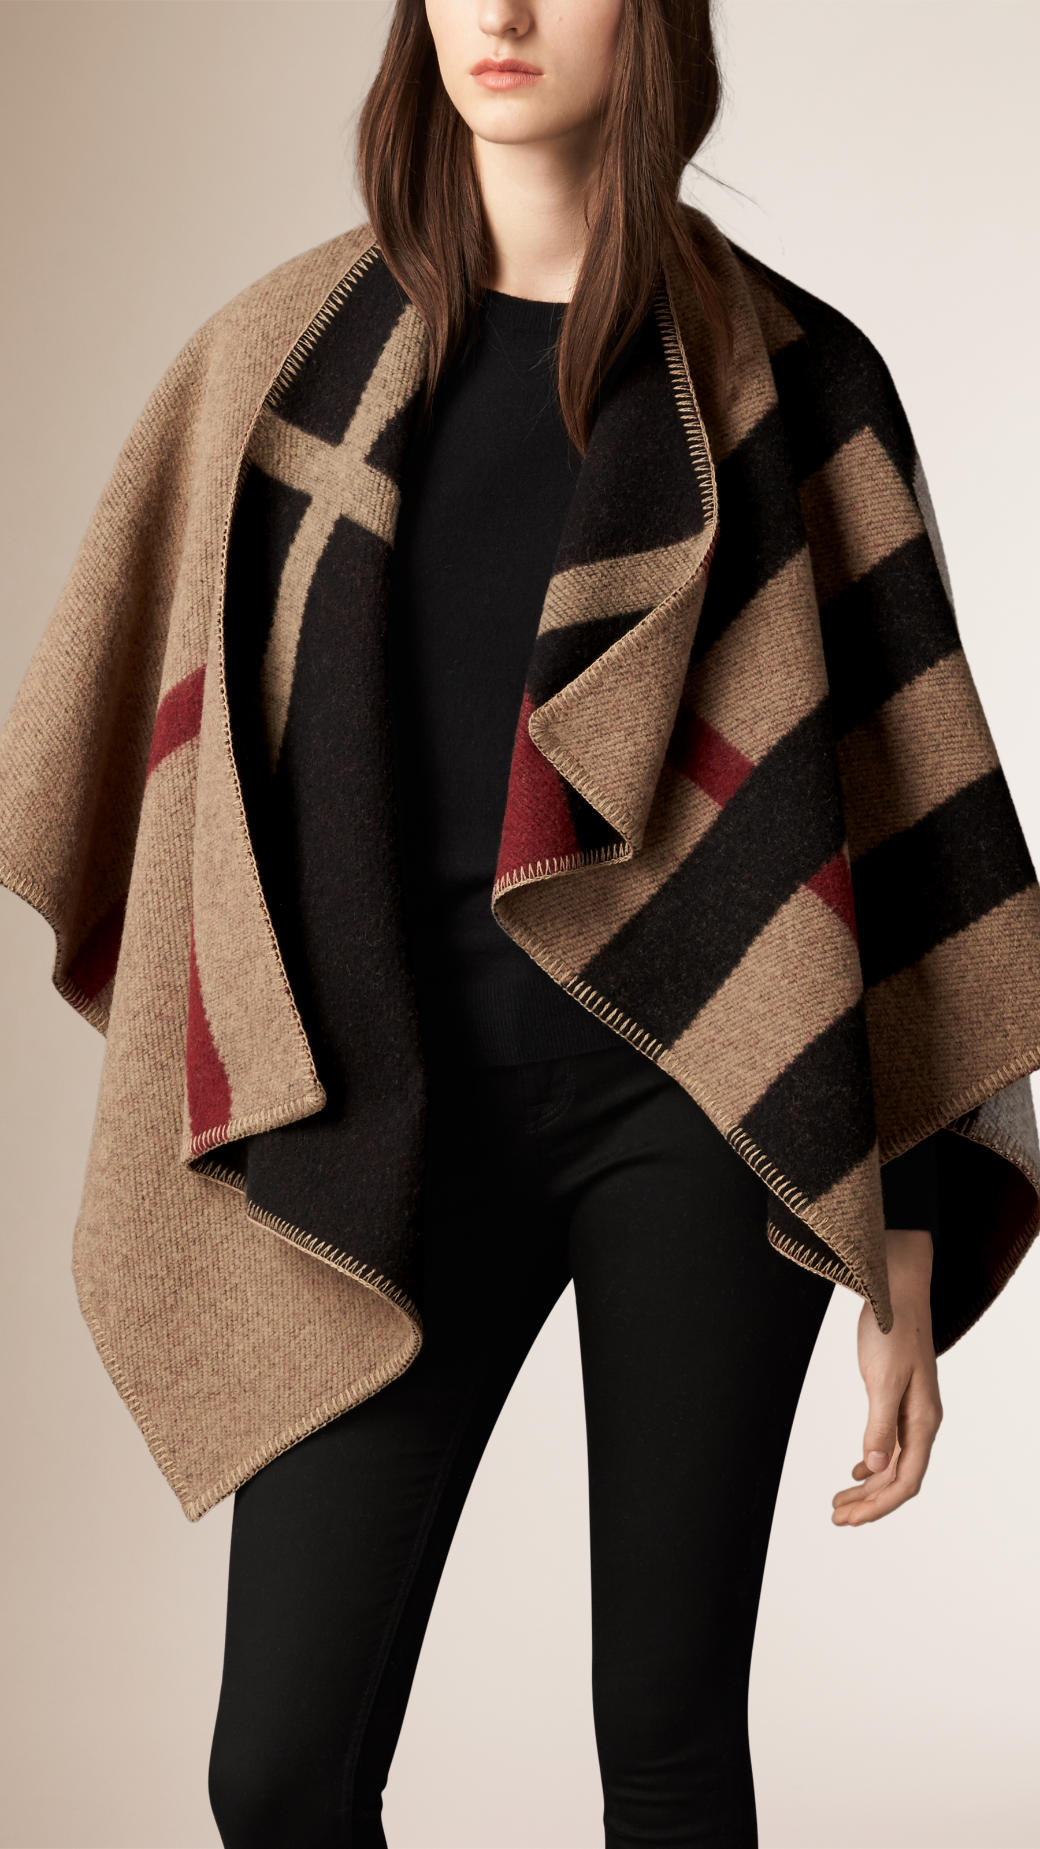 10 new burberry capes ponchos for autumn winter 2015. Black Bedroom Furniture Sets. Home Design Ideas